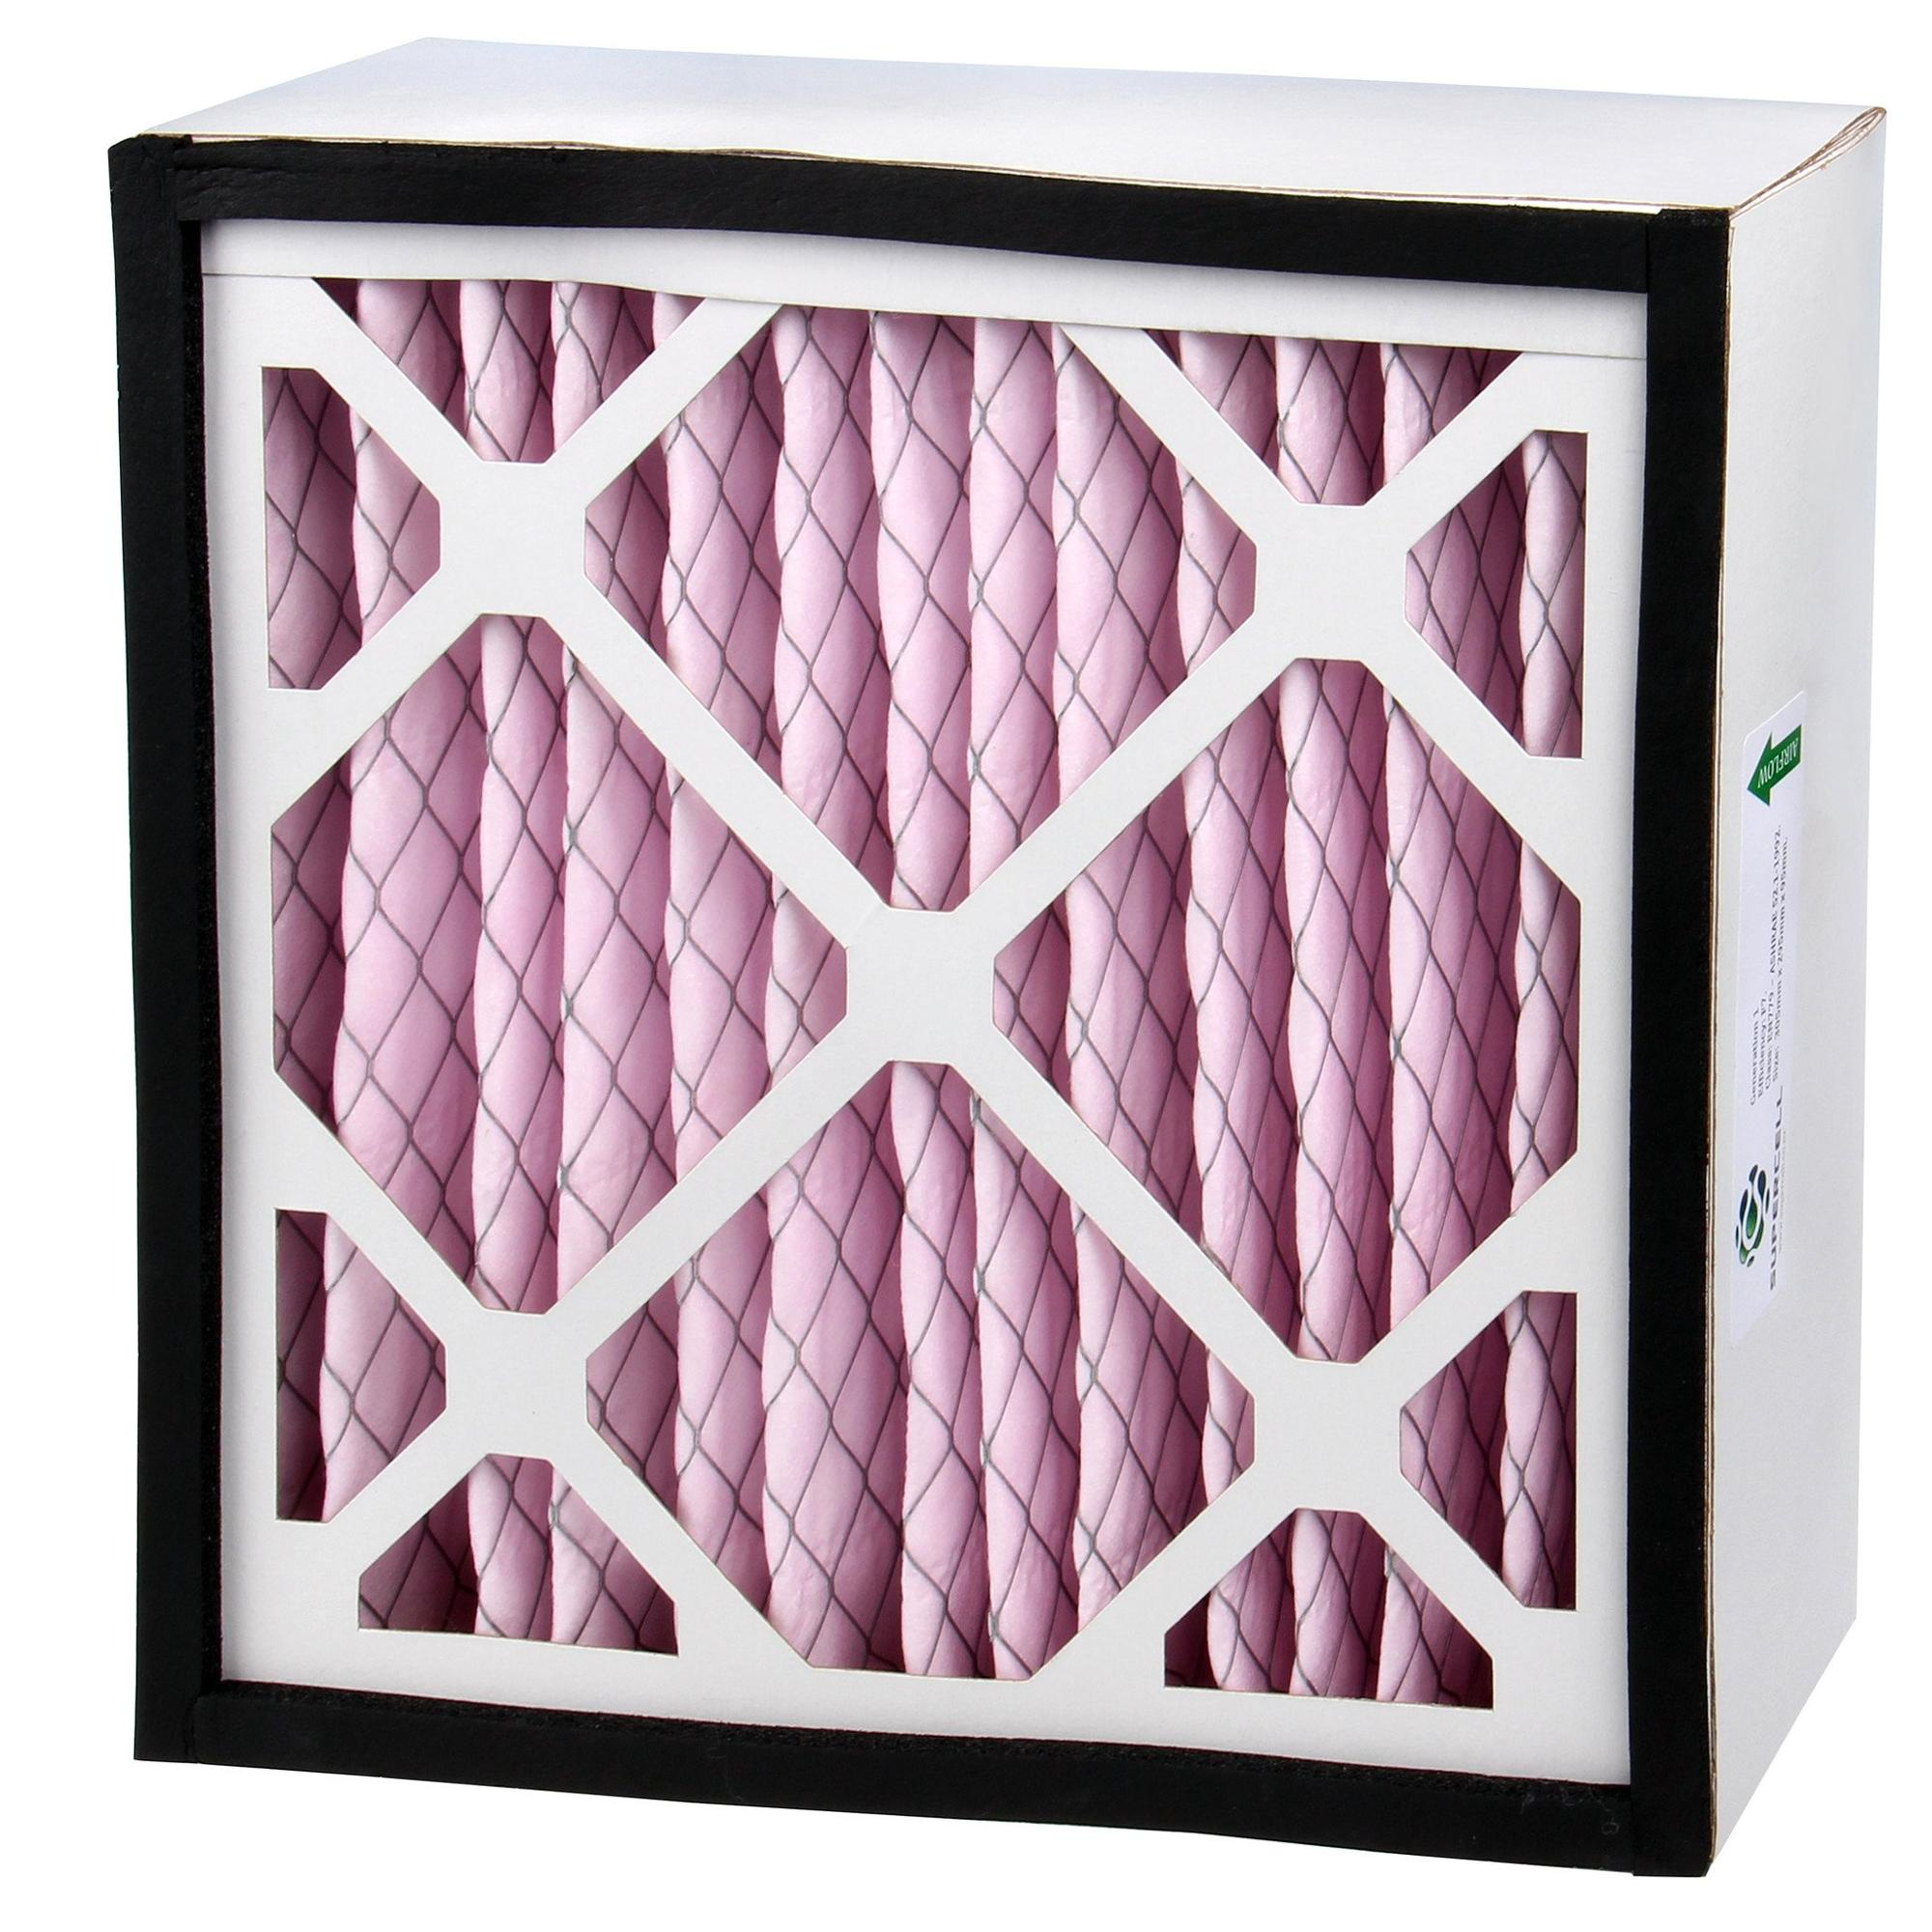 F8  box air pleated filter for home ventilation system